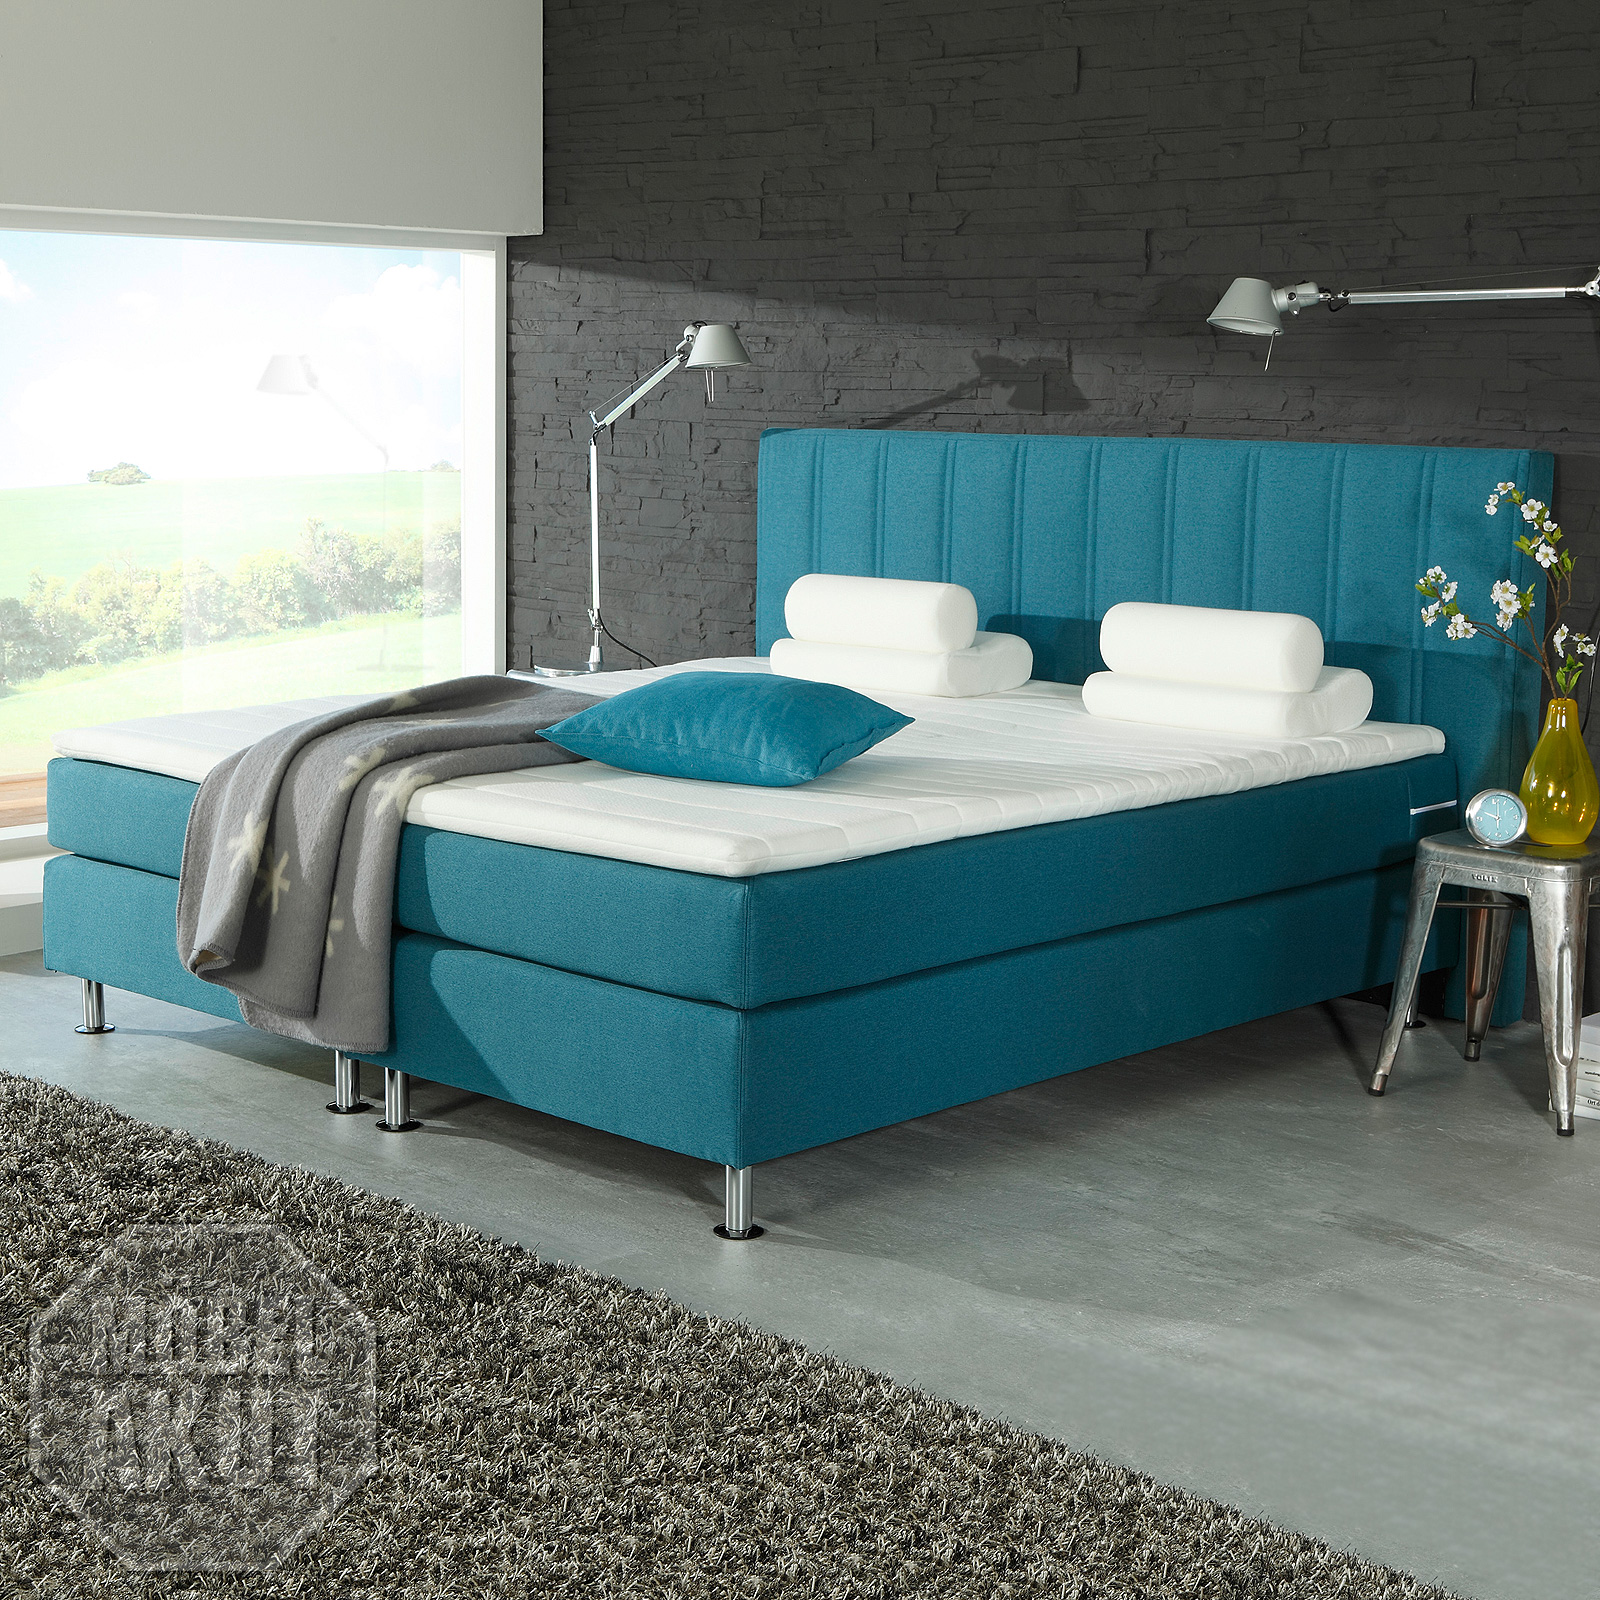 boxspring bett ohio doppelbett hotelbett in petrol blau. Black Bedroom Furniture Sets. Home Design Ideas